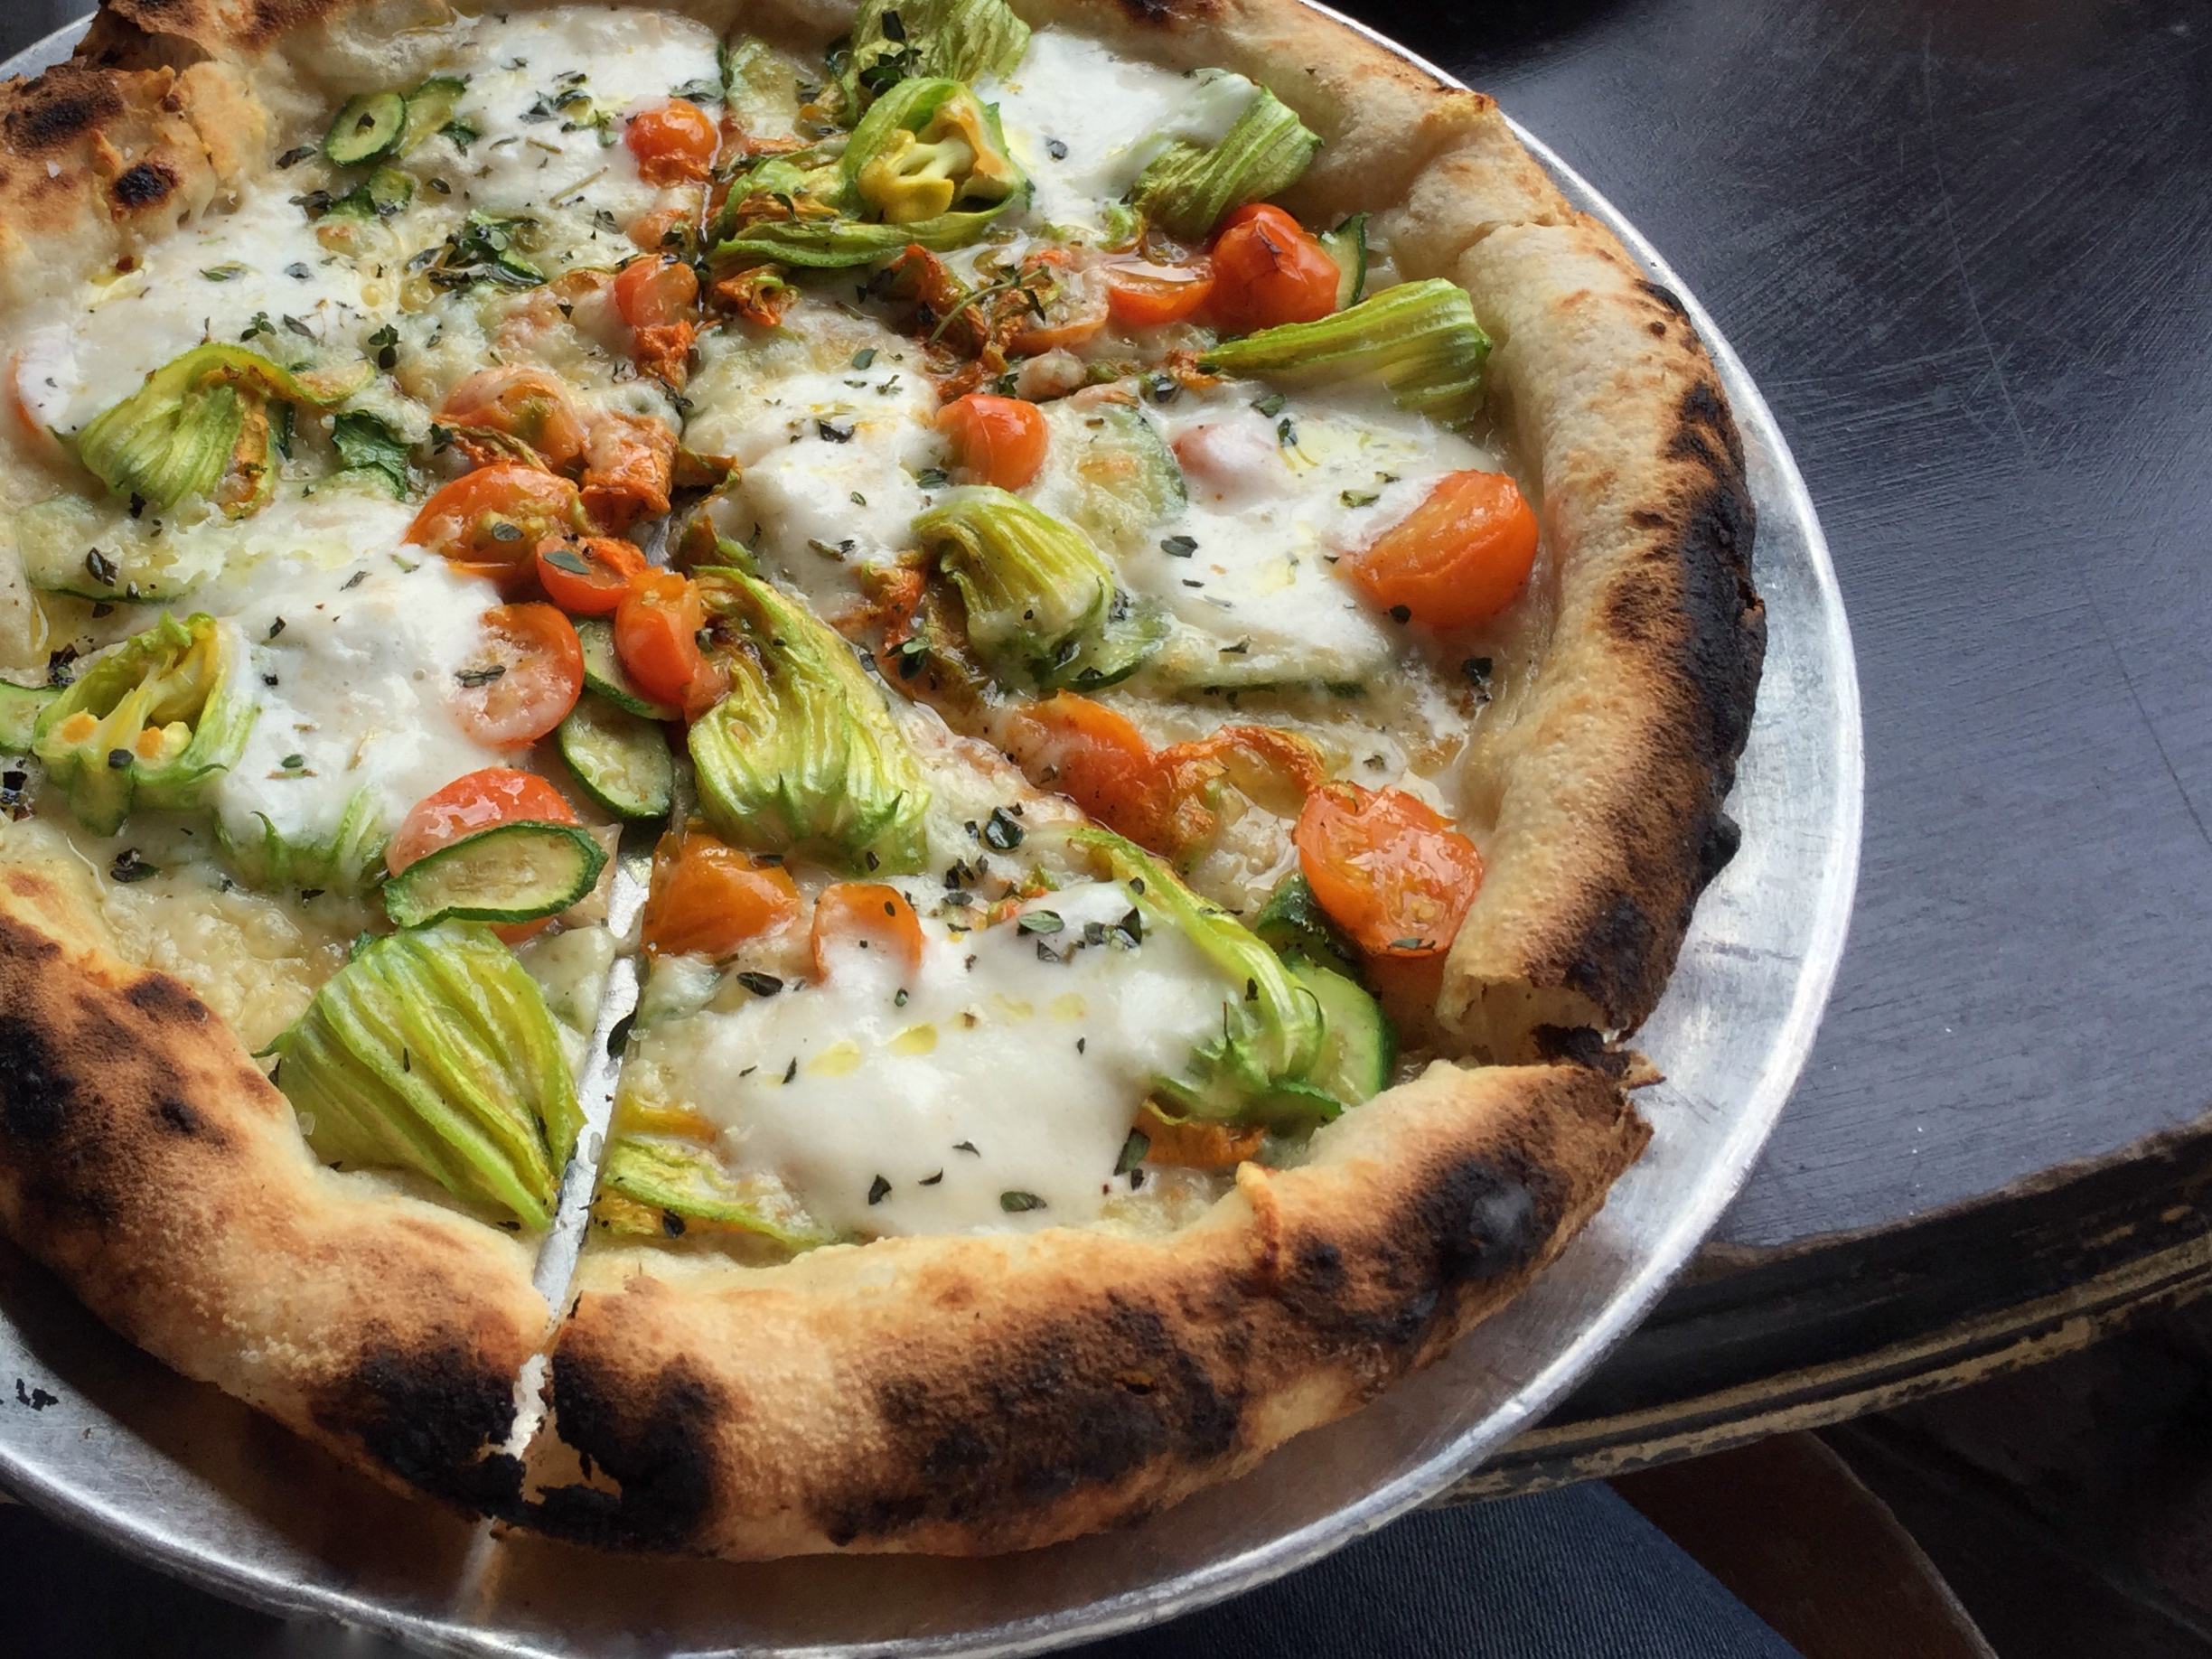 Gjelina's squash blossom pizza with cherry tomatoes, thyme, burrata and Parmesan. ( Photo by Lincoln & Rose )